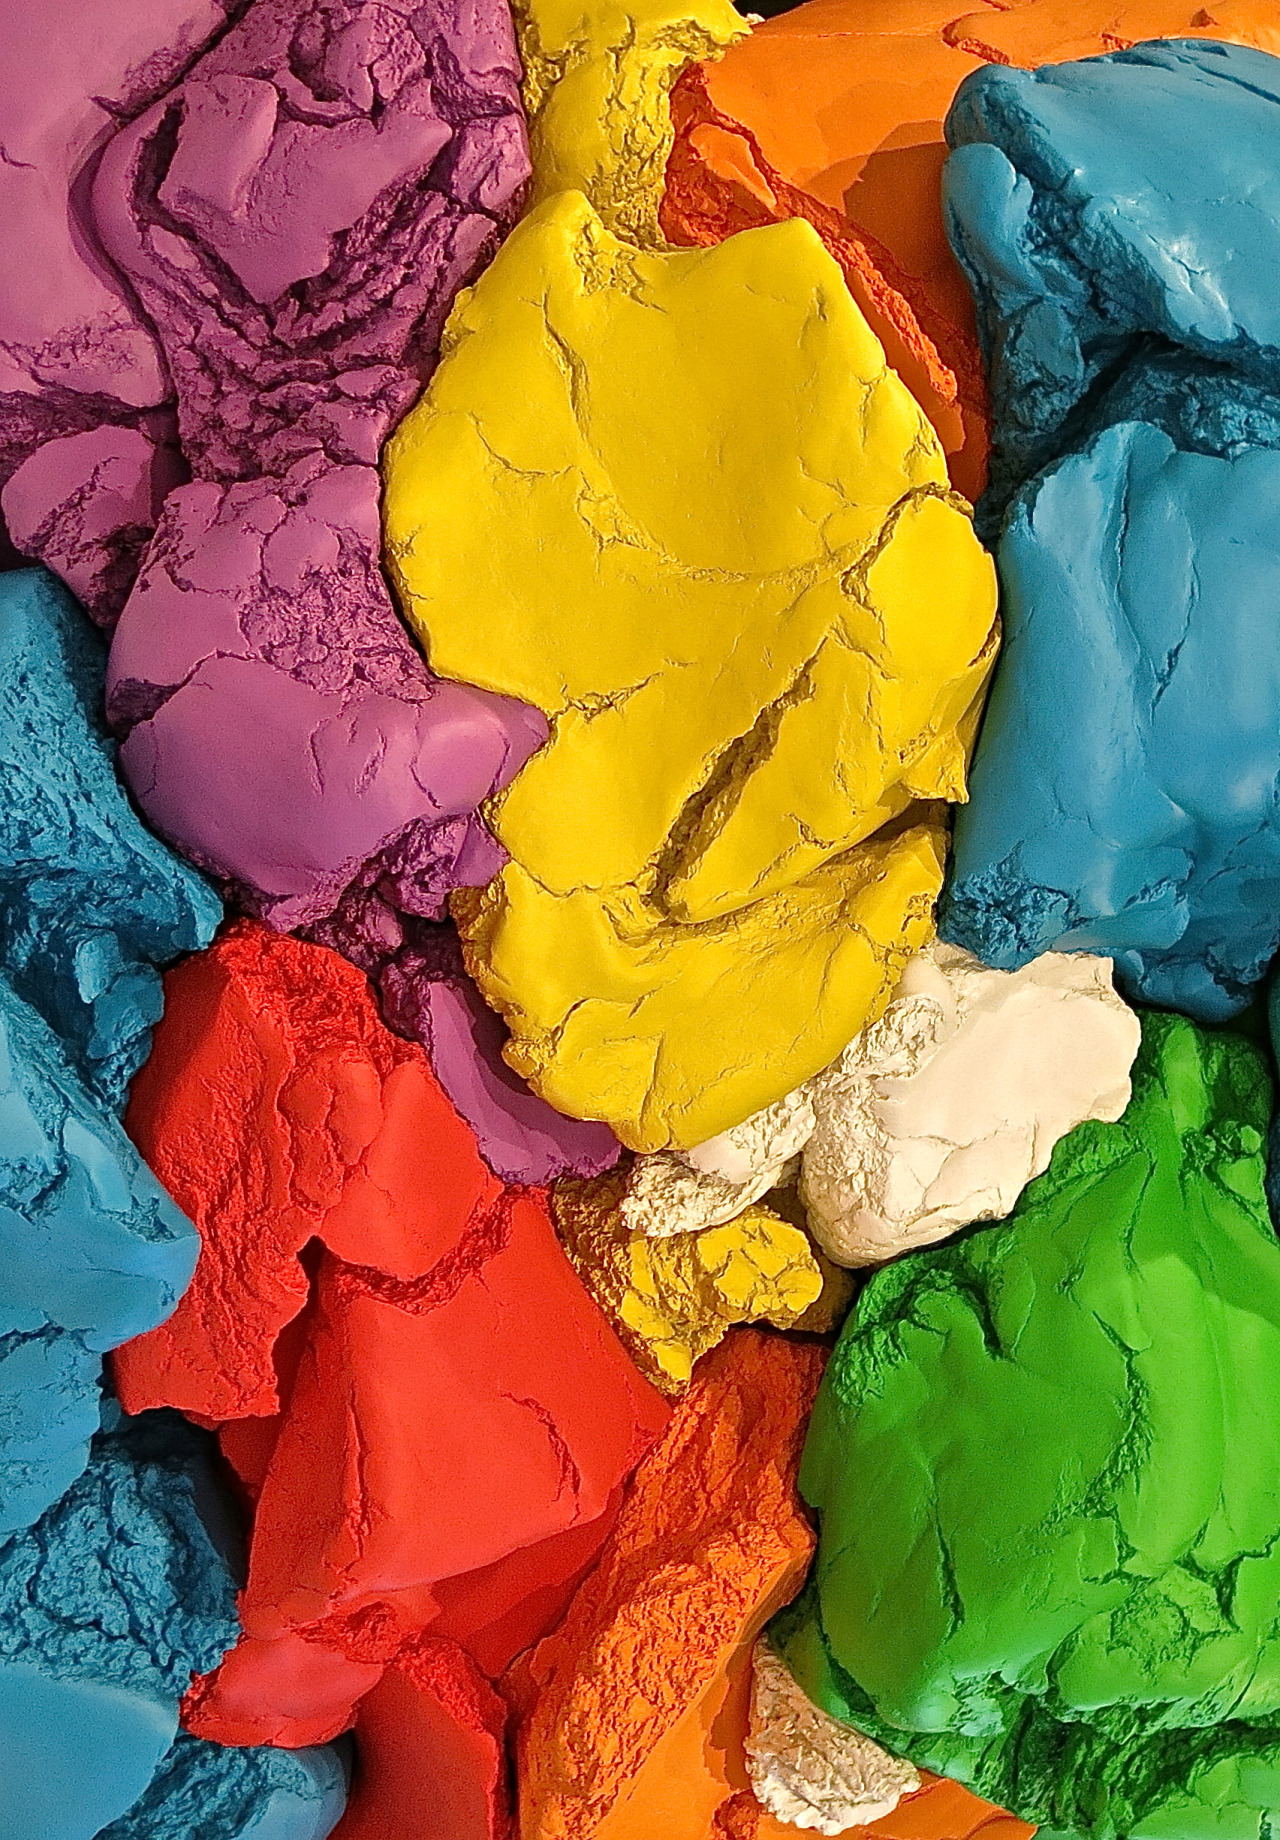 whitneymuseum :     Detail of  Jeff Koons 's  Play-Doh  (1994–2014) via  lizacharlesworth1 .